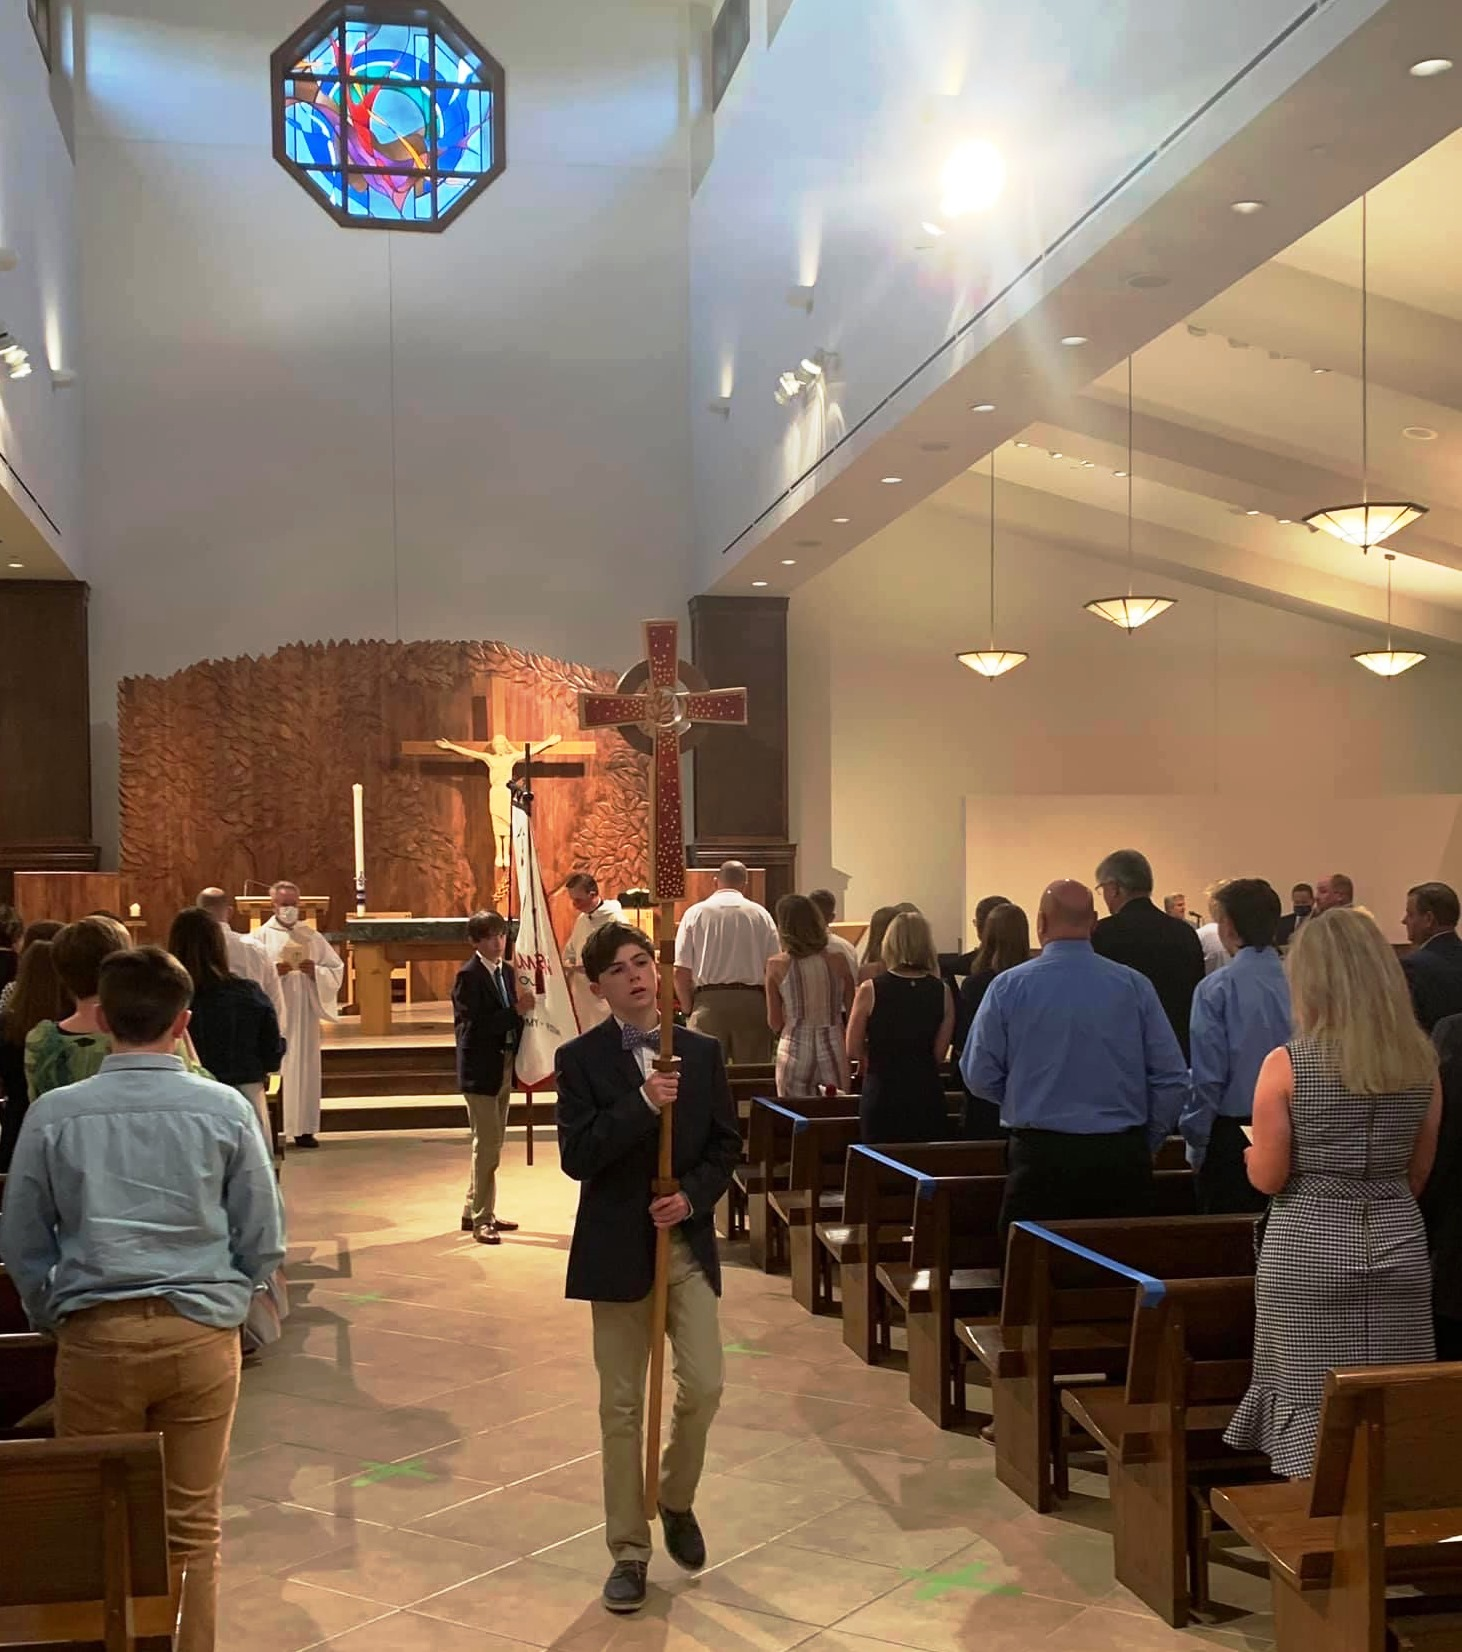 No Commencement Mass celebrates grads at St. Columban School in ...